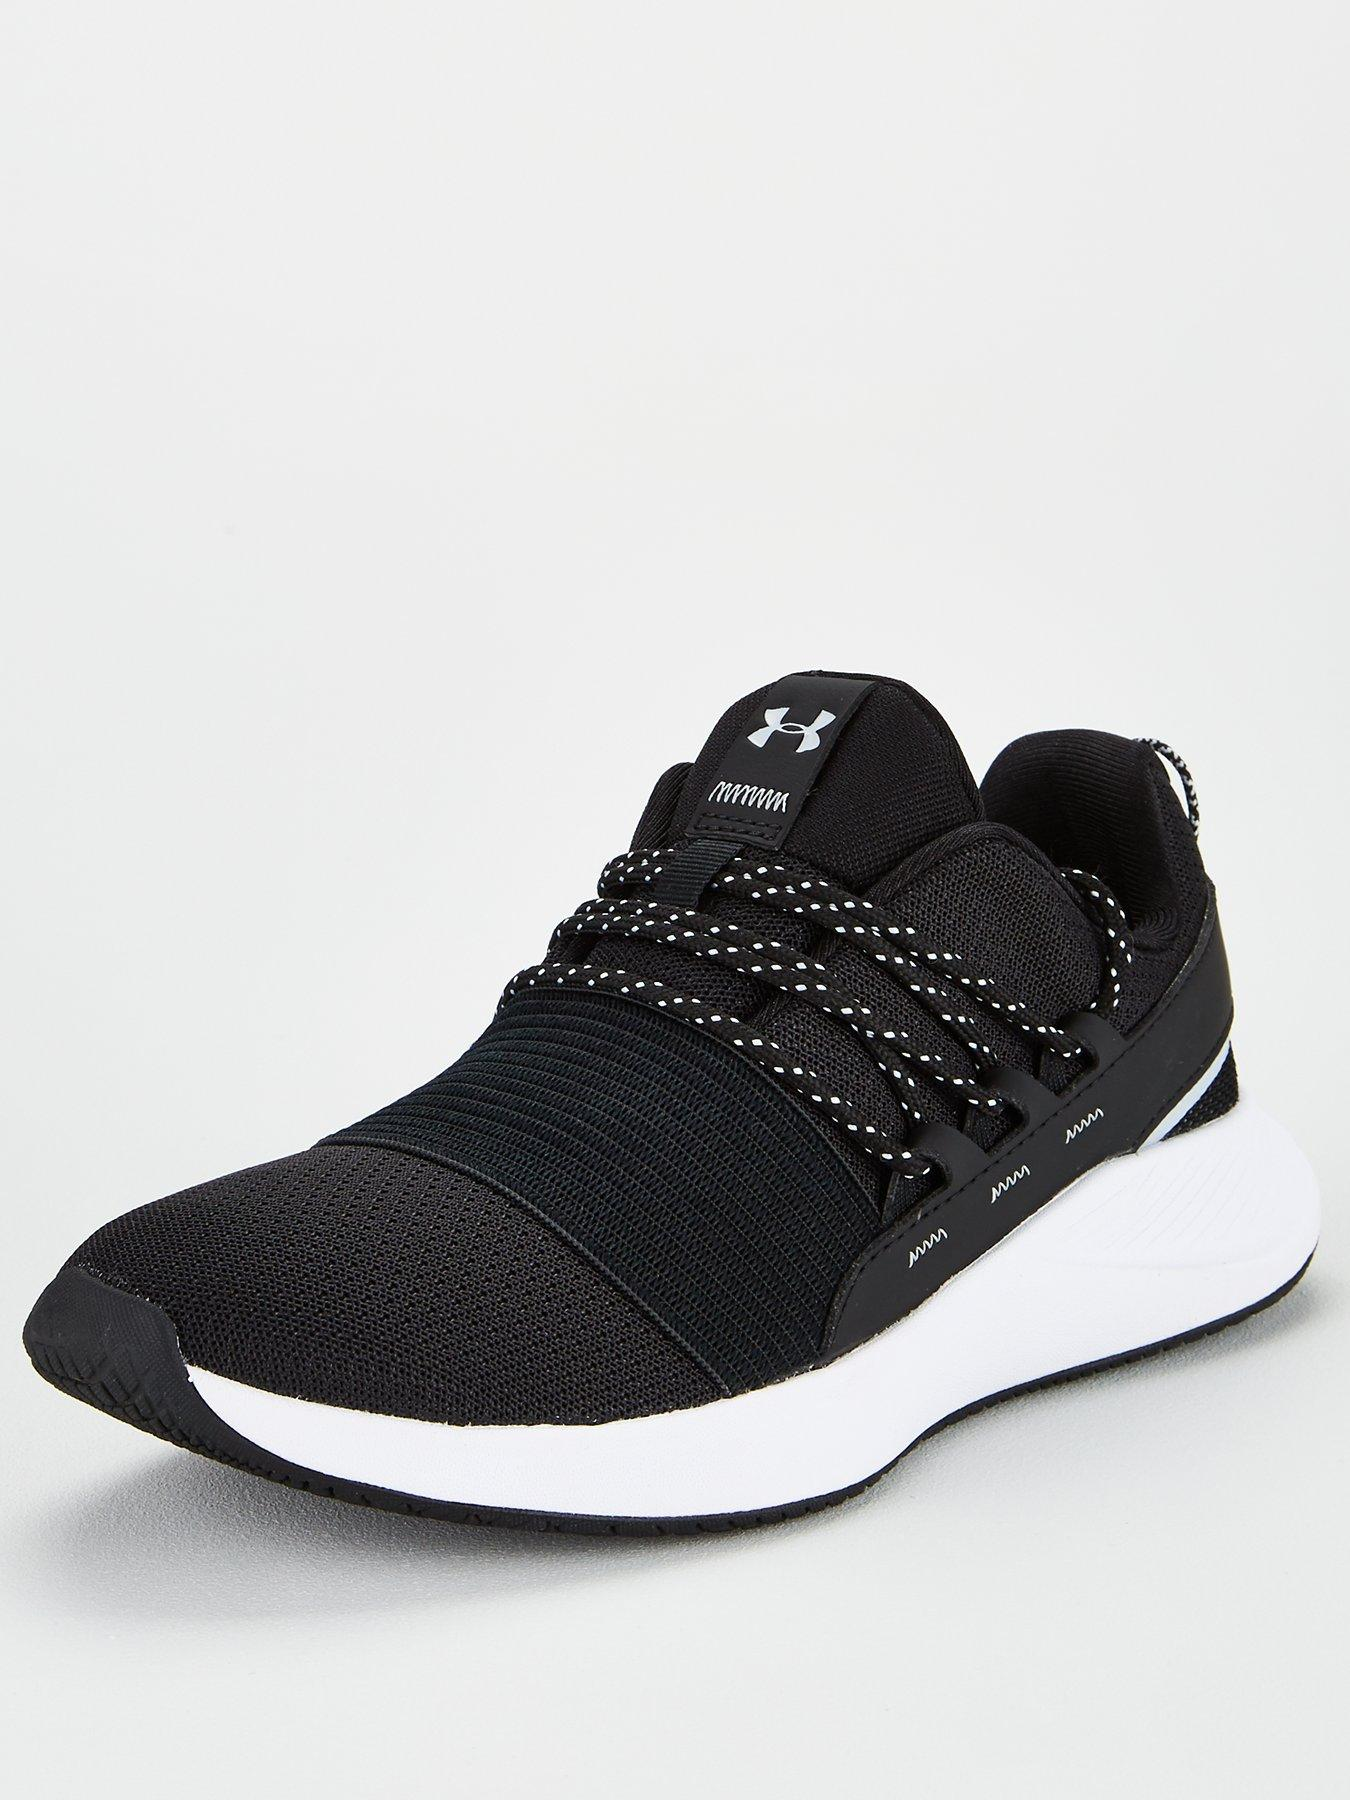 5   Under armour   Trainers   Women